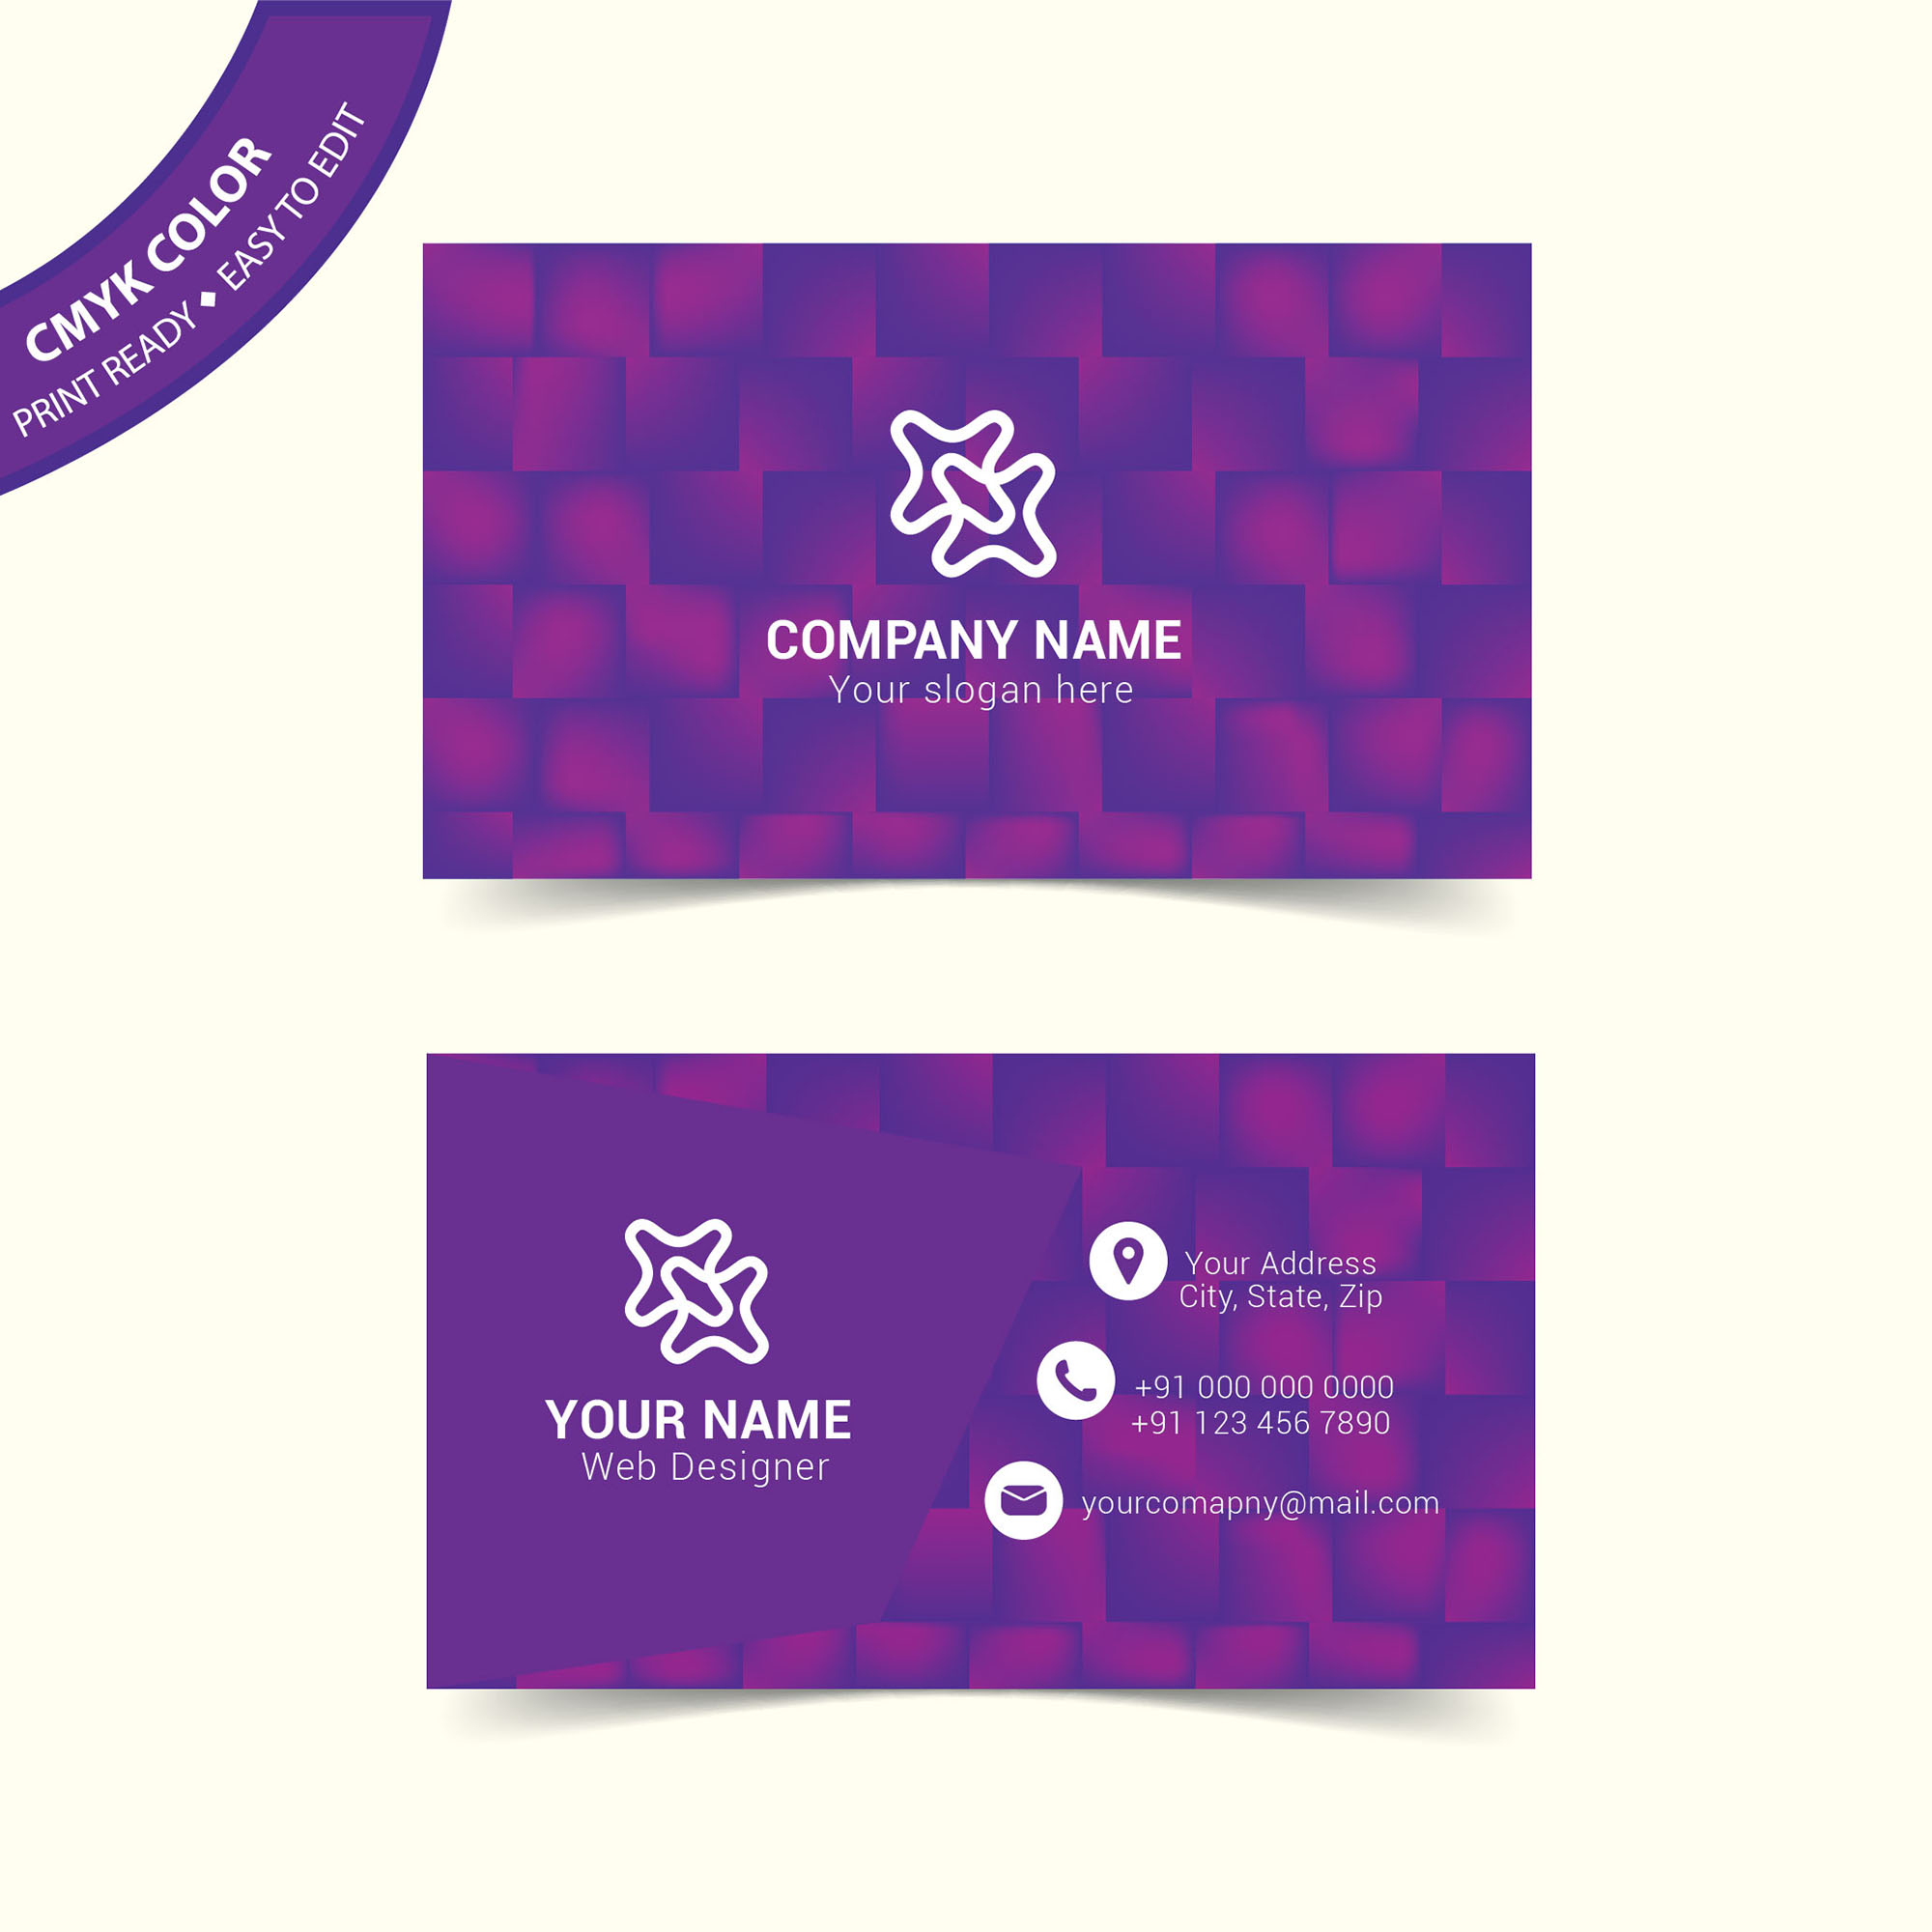 Free business card templates design your business card oukasfo tagsfree business card templates design your business cardfree business card designs templatesbusiness card star its easy to make your own business reheart Gallery